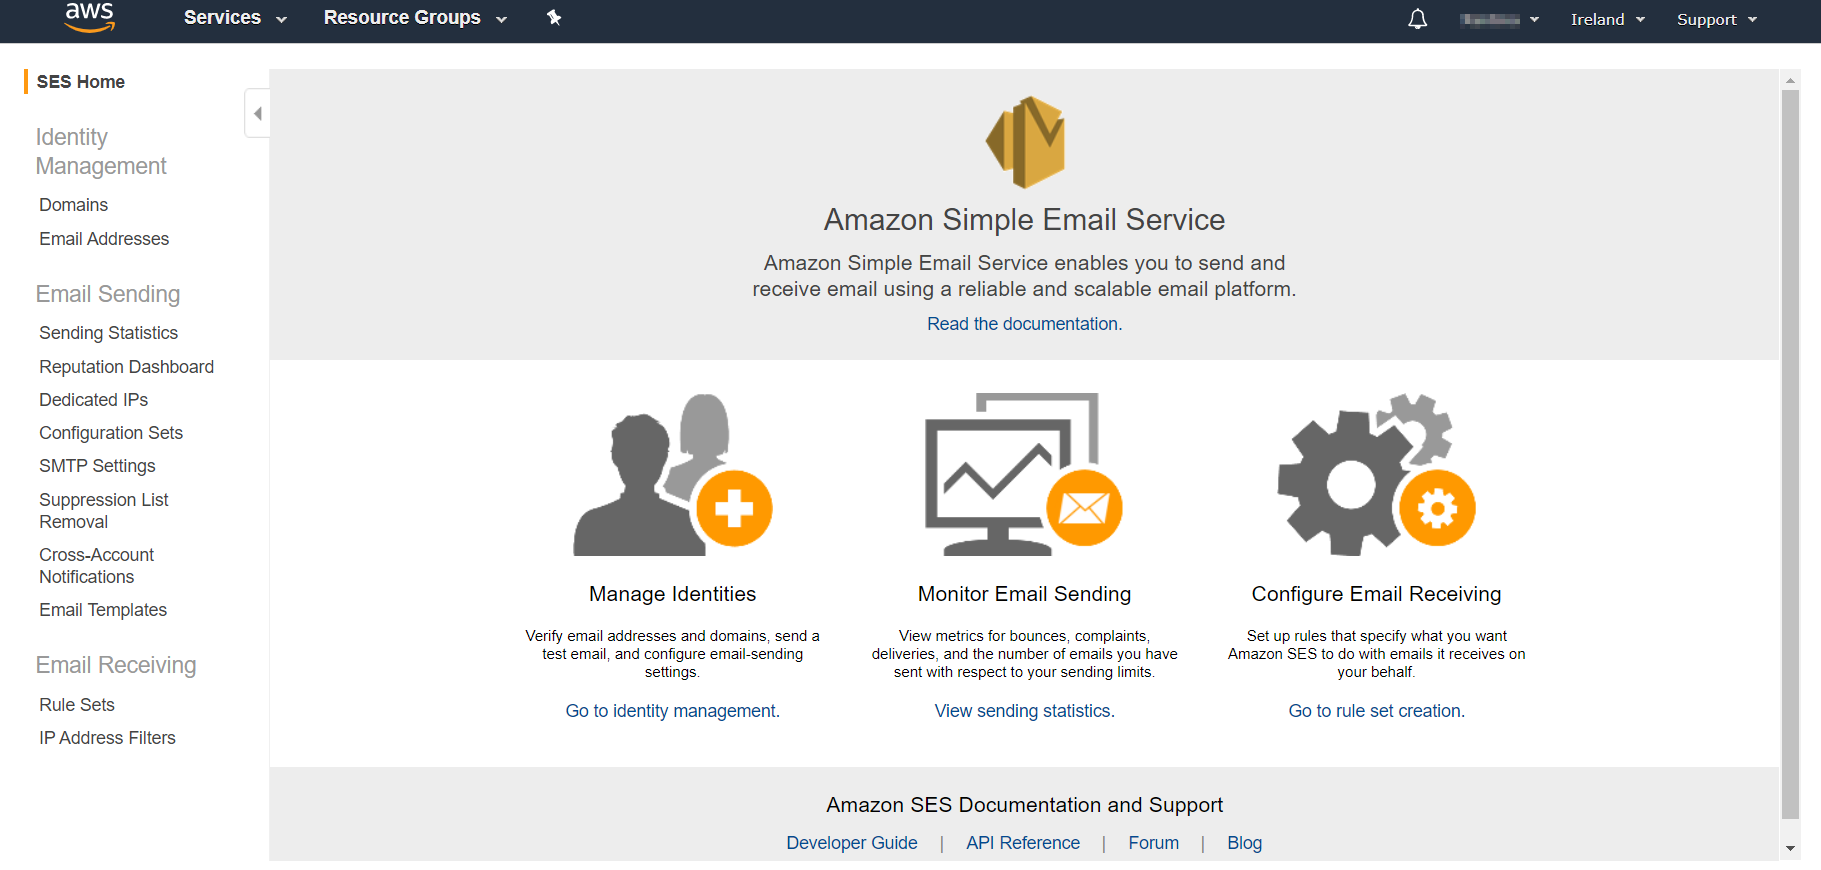 AWS Management Console Home page